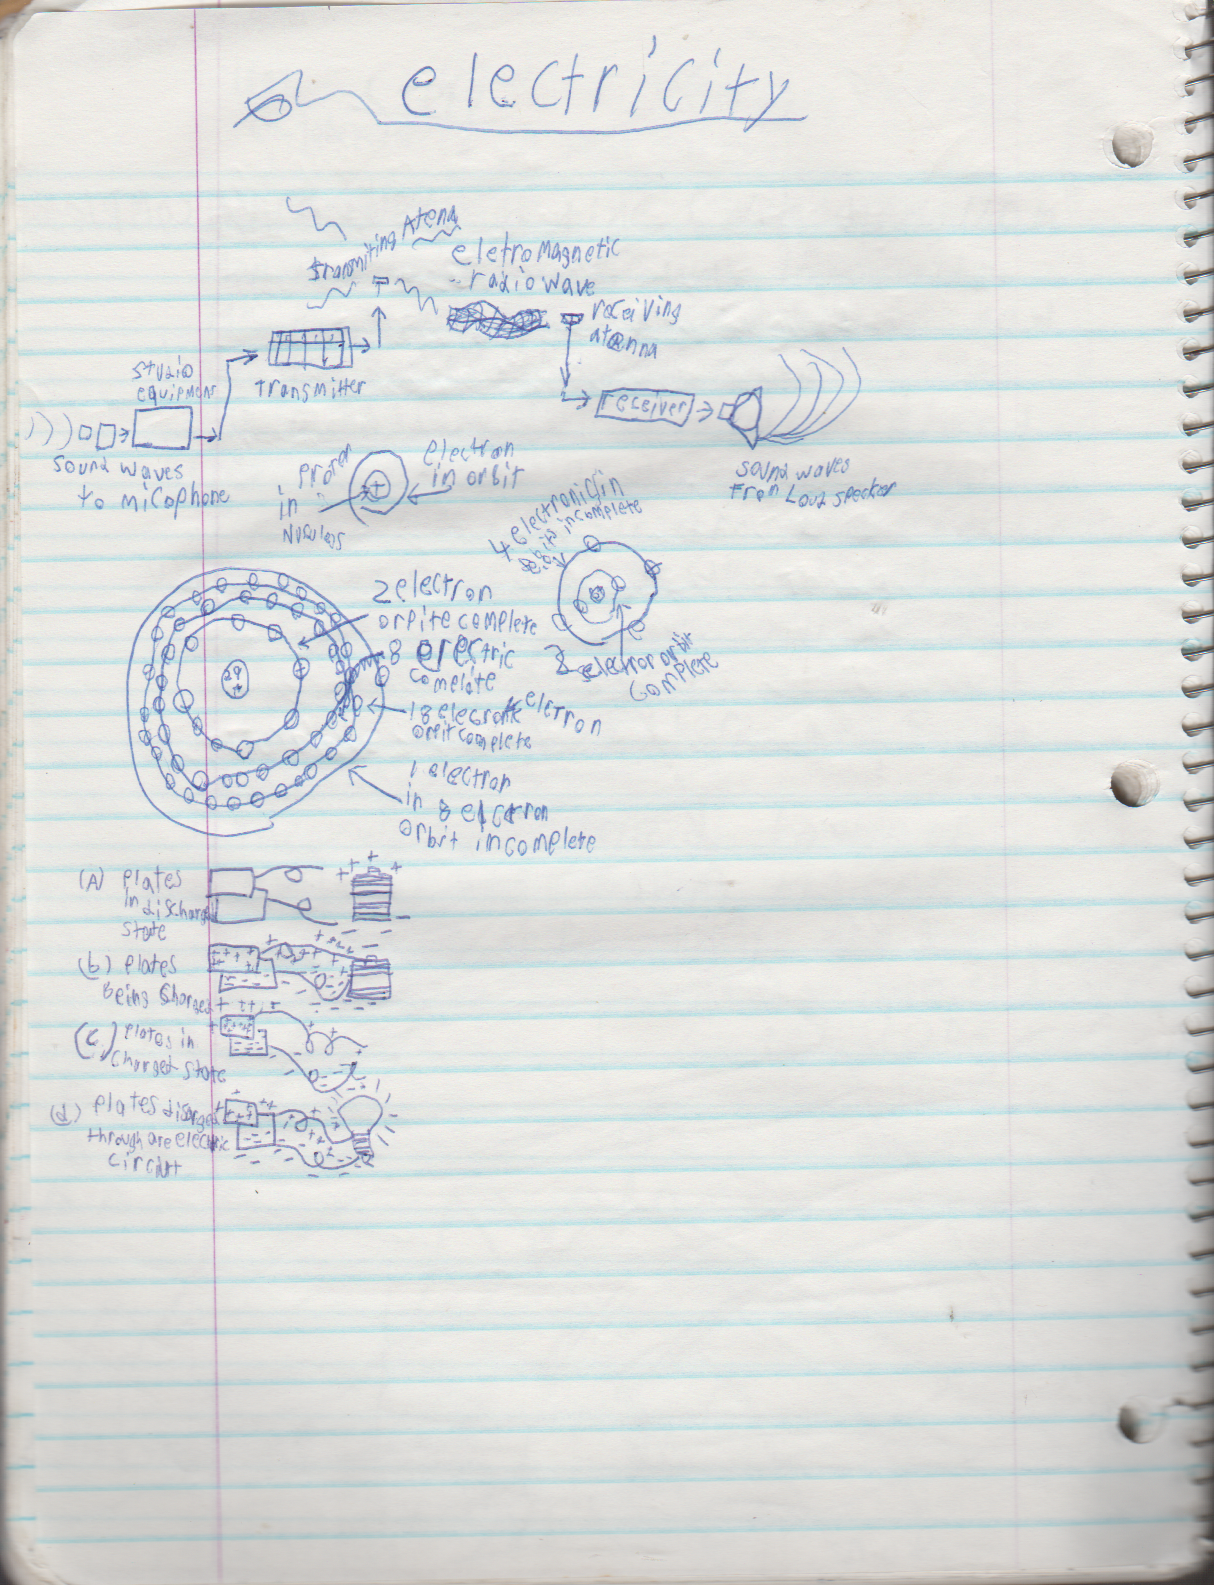 1996-08-18 - Saturday - 11 yr old Joey Arnold's School Book, dates through to 1998 apx, mostly 96, Writings, Drawings, Etc-056.png